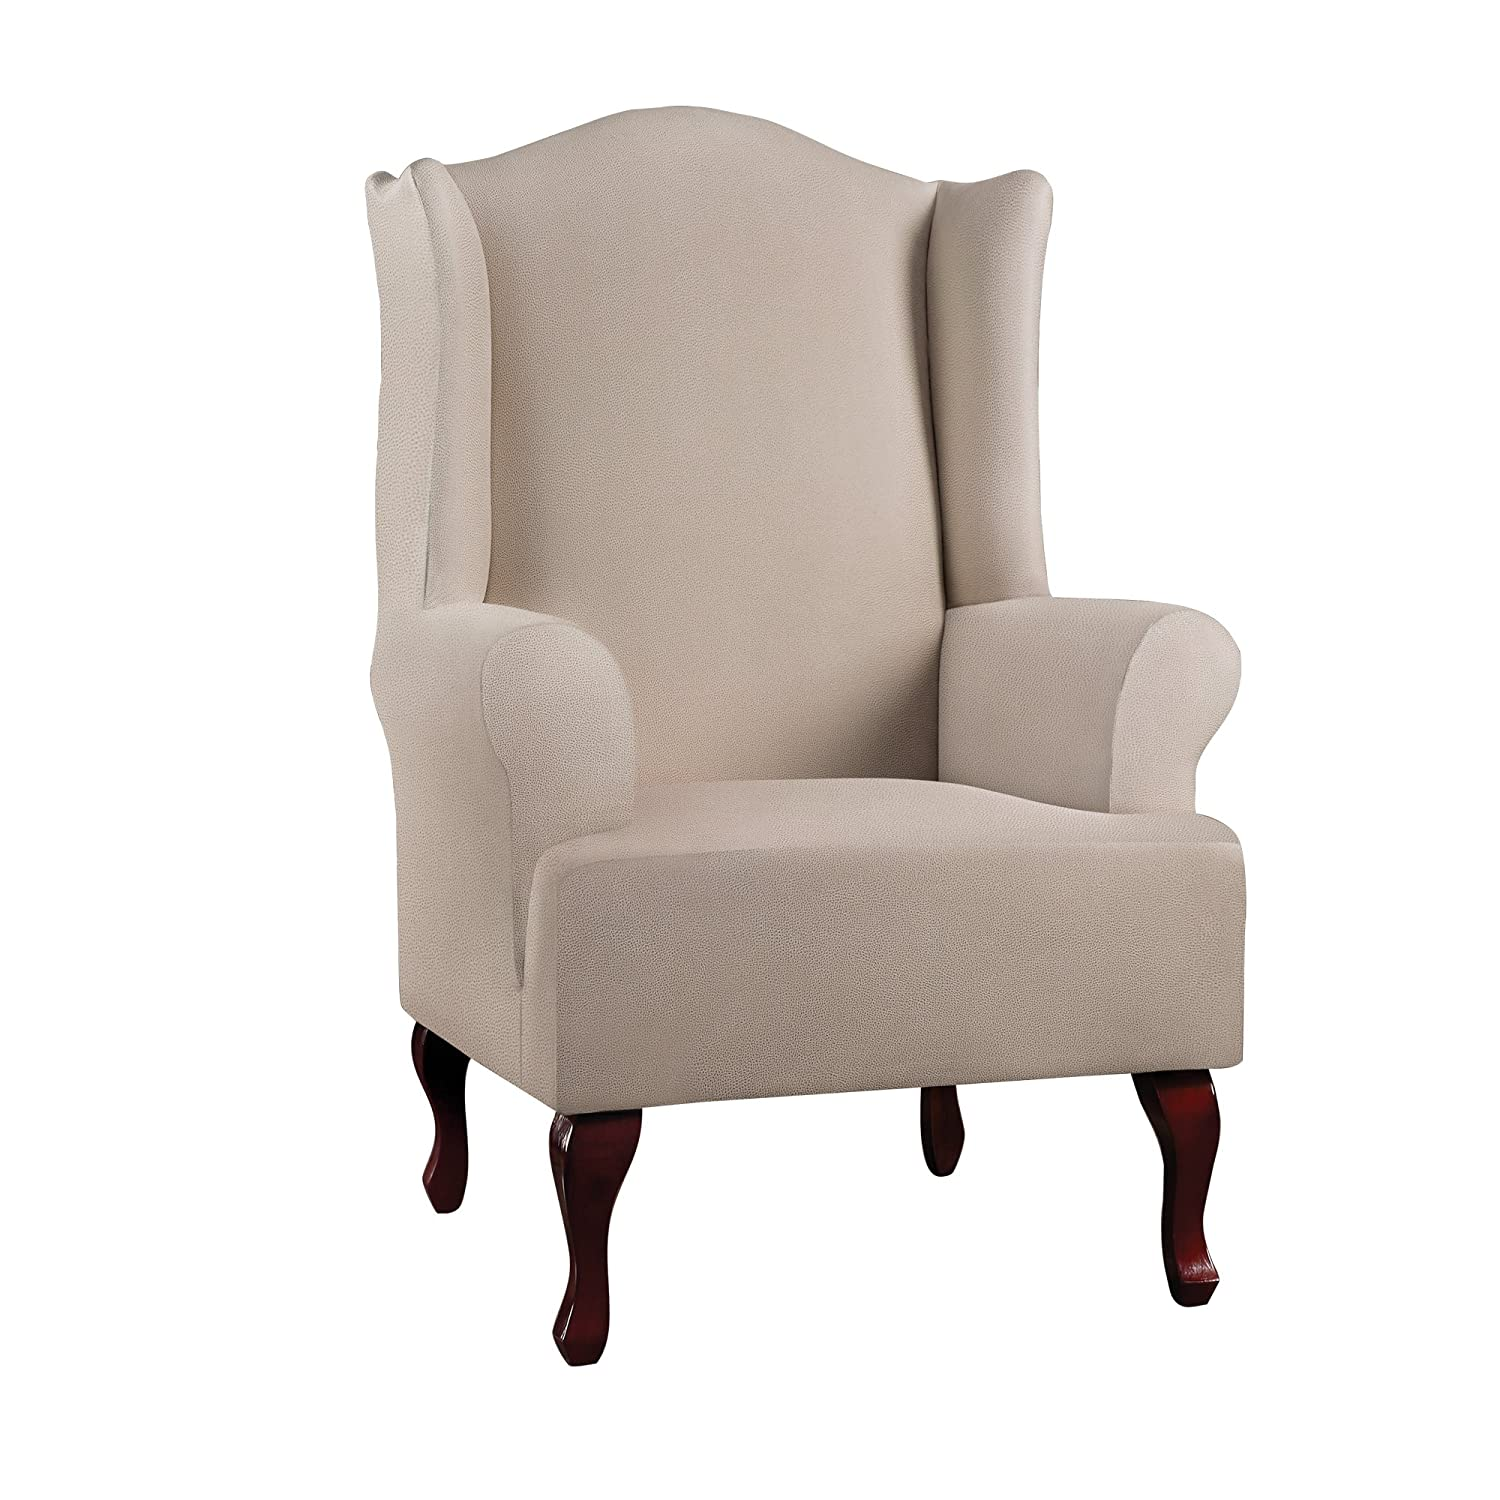 Sure Fit究極HeavyweightストレッチレザーWing Chair Slipcover – Pebbledアイボリー( sf46672 )   B079Z2DZPF